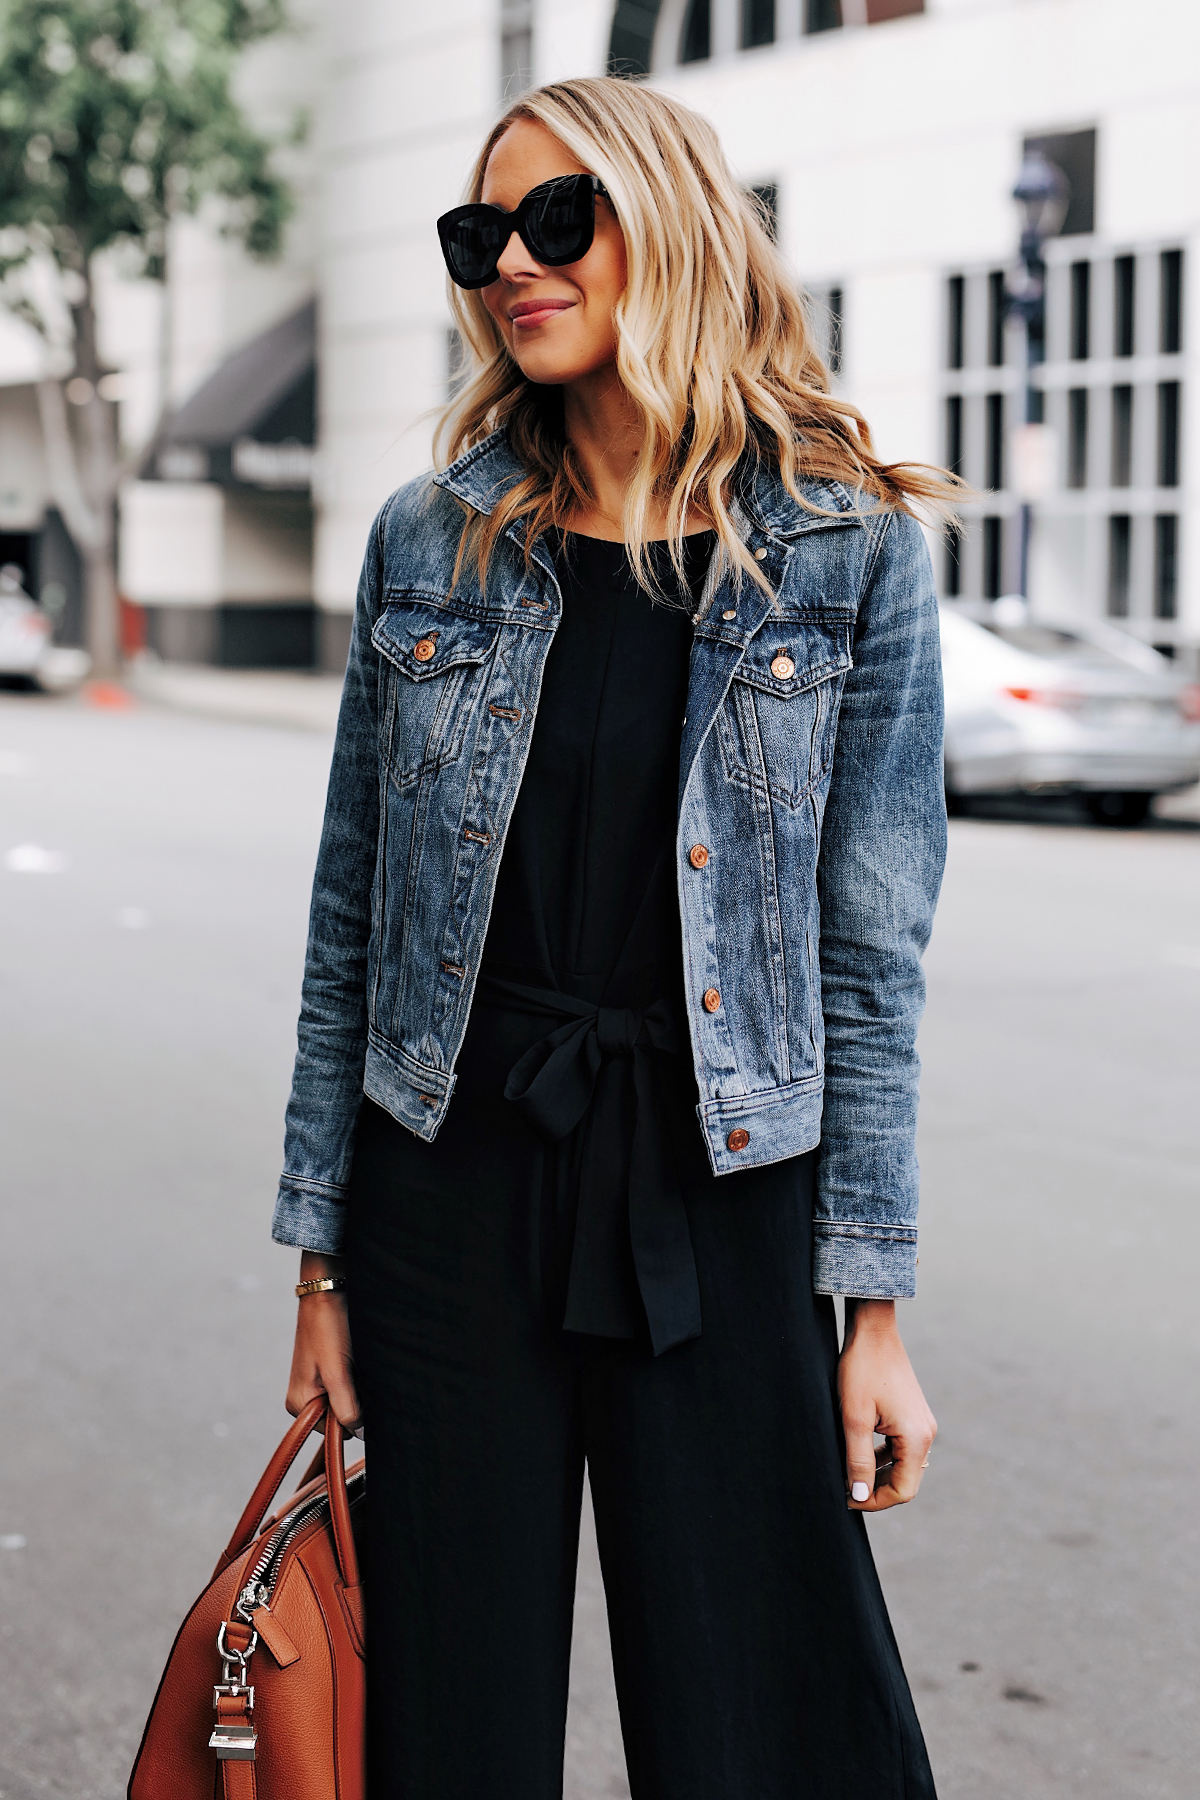 Blonde Woman Wearing Everlane Black Jumpsuit Denim Jacket Tan Tote Fashion Jackson San Diego Fashion Blogger Street Style